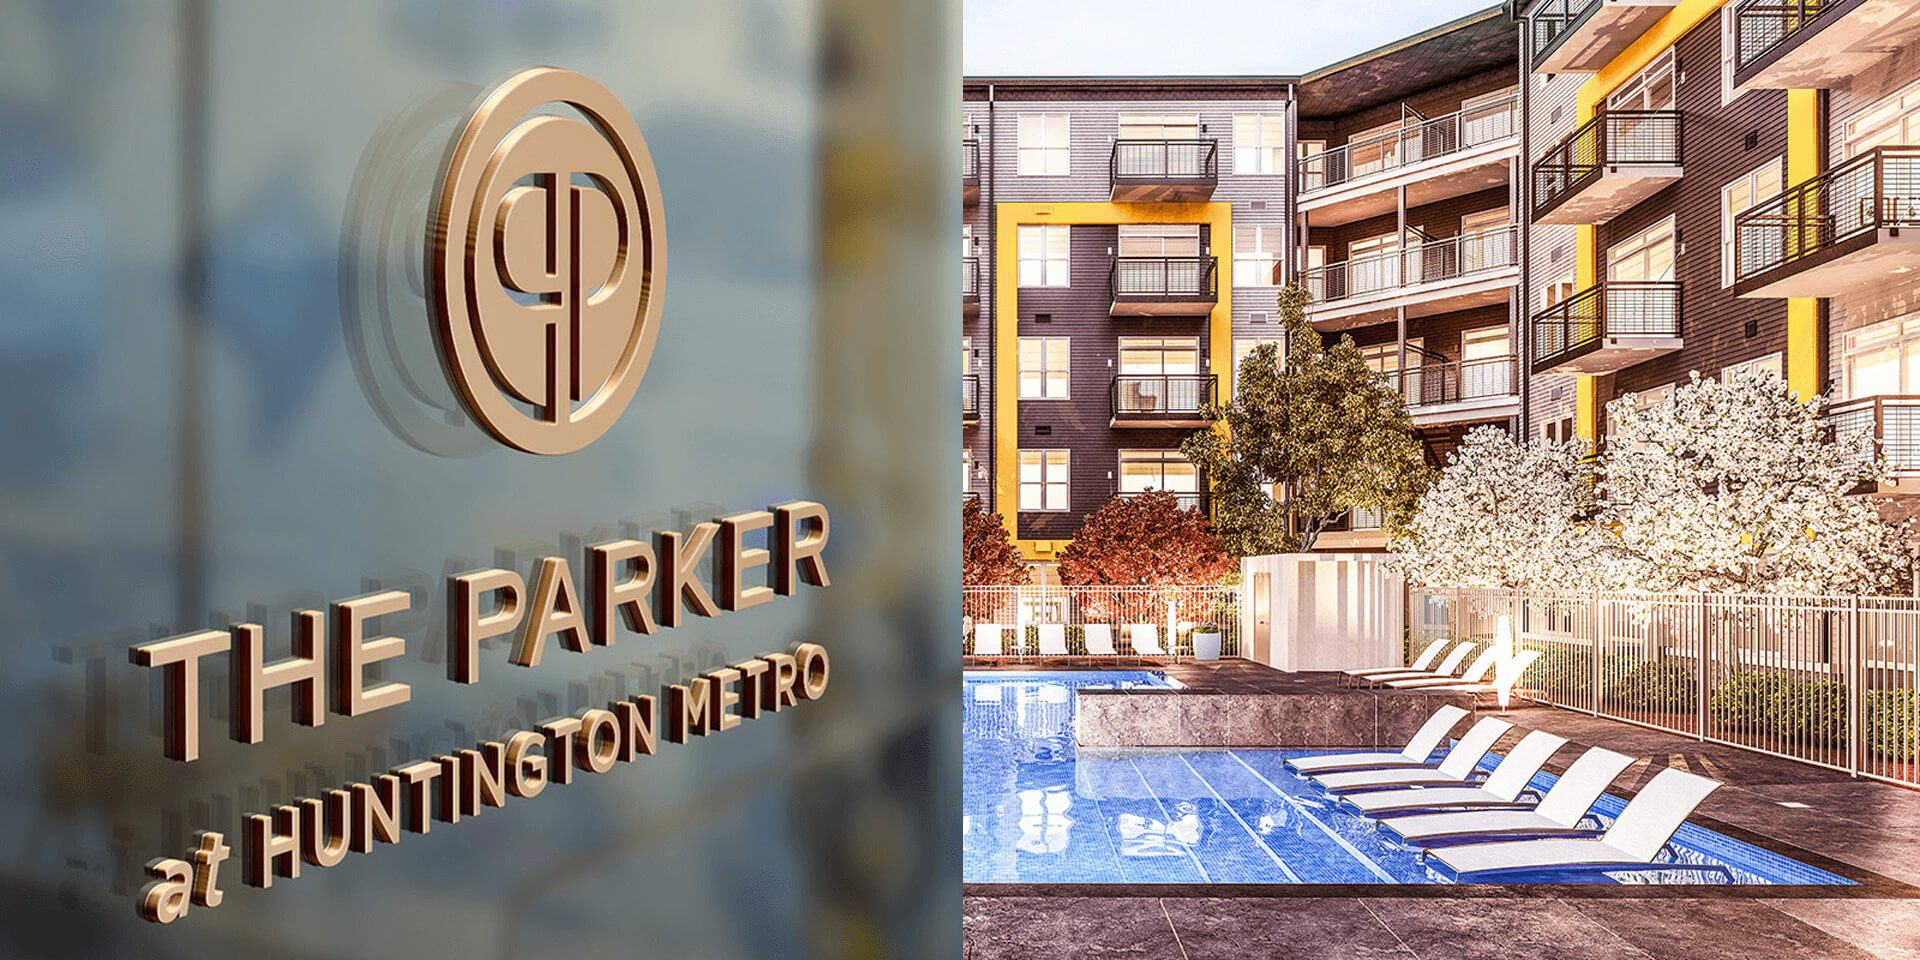 Brand identity and naming of The Parker by Bozzuto was executed by top branding agency, Grafik.